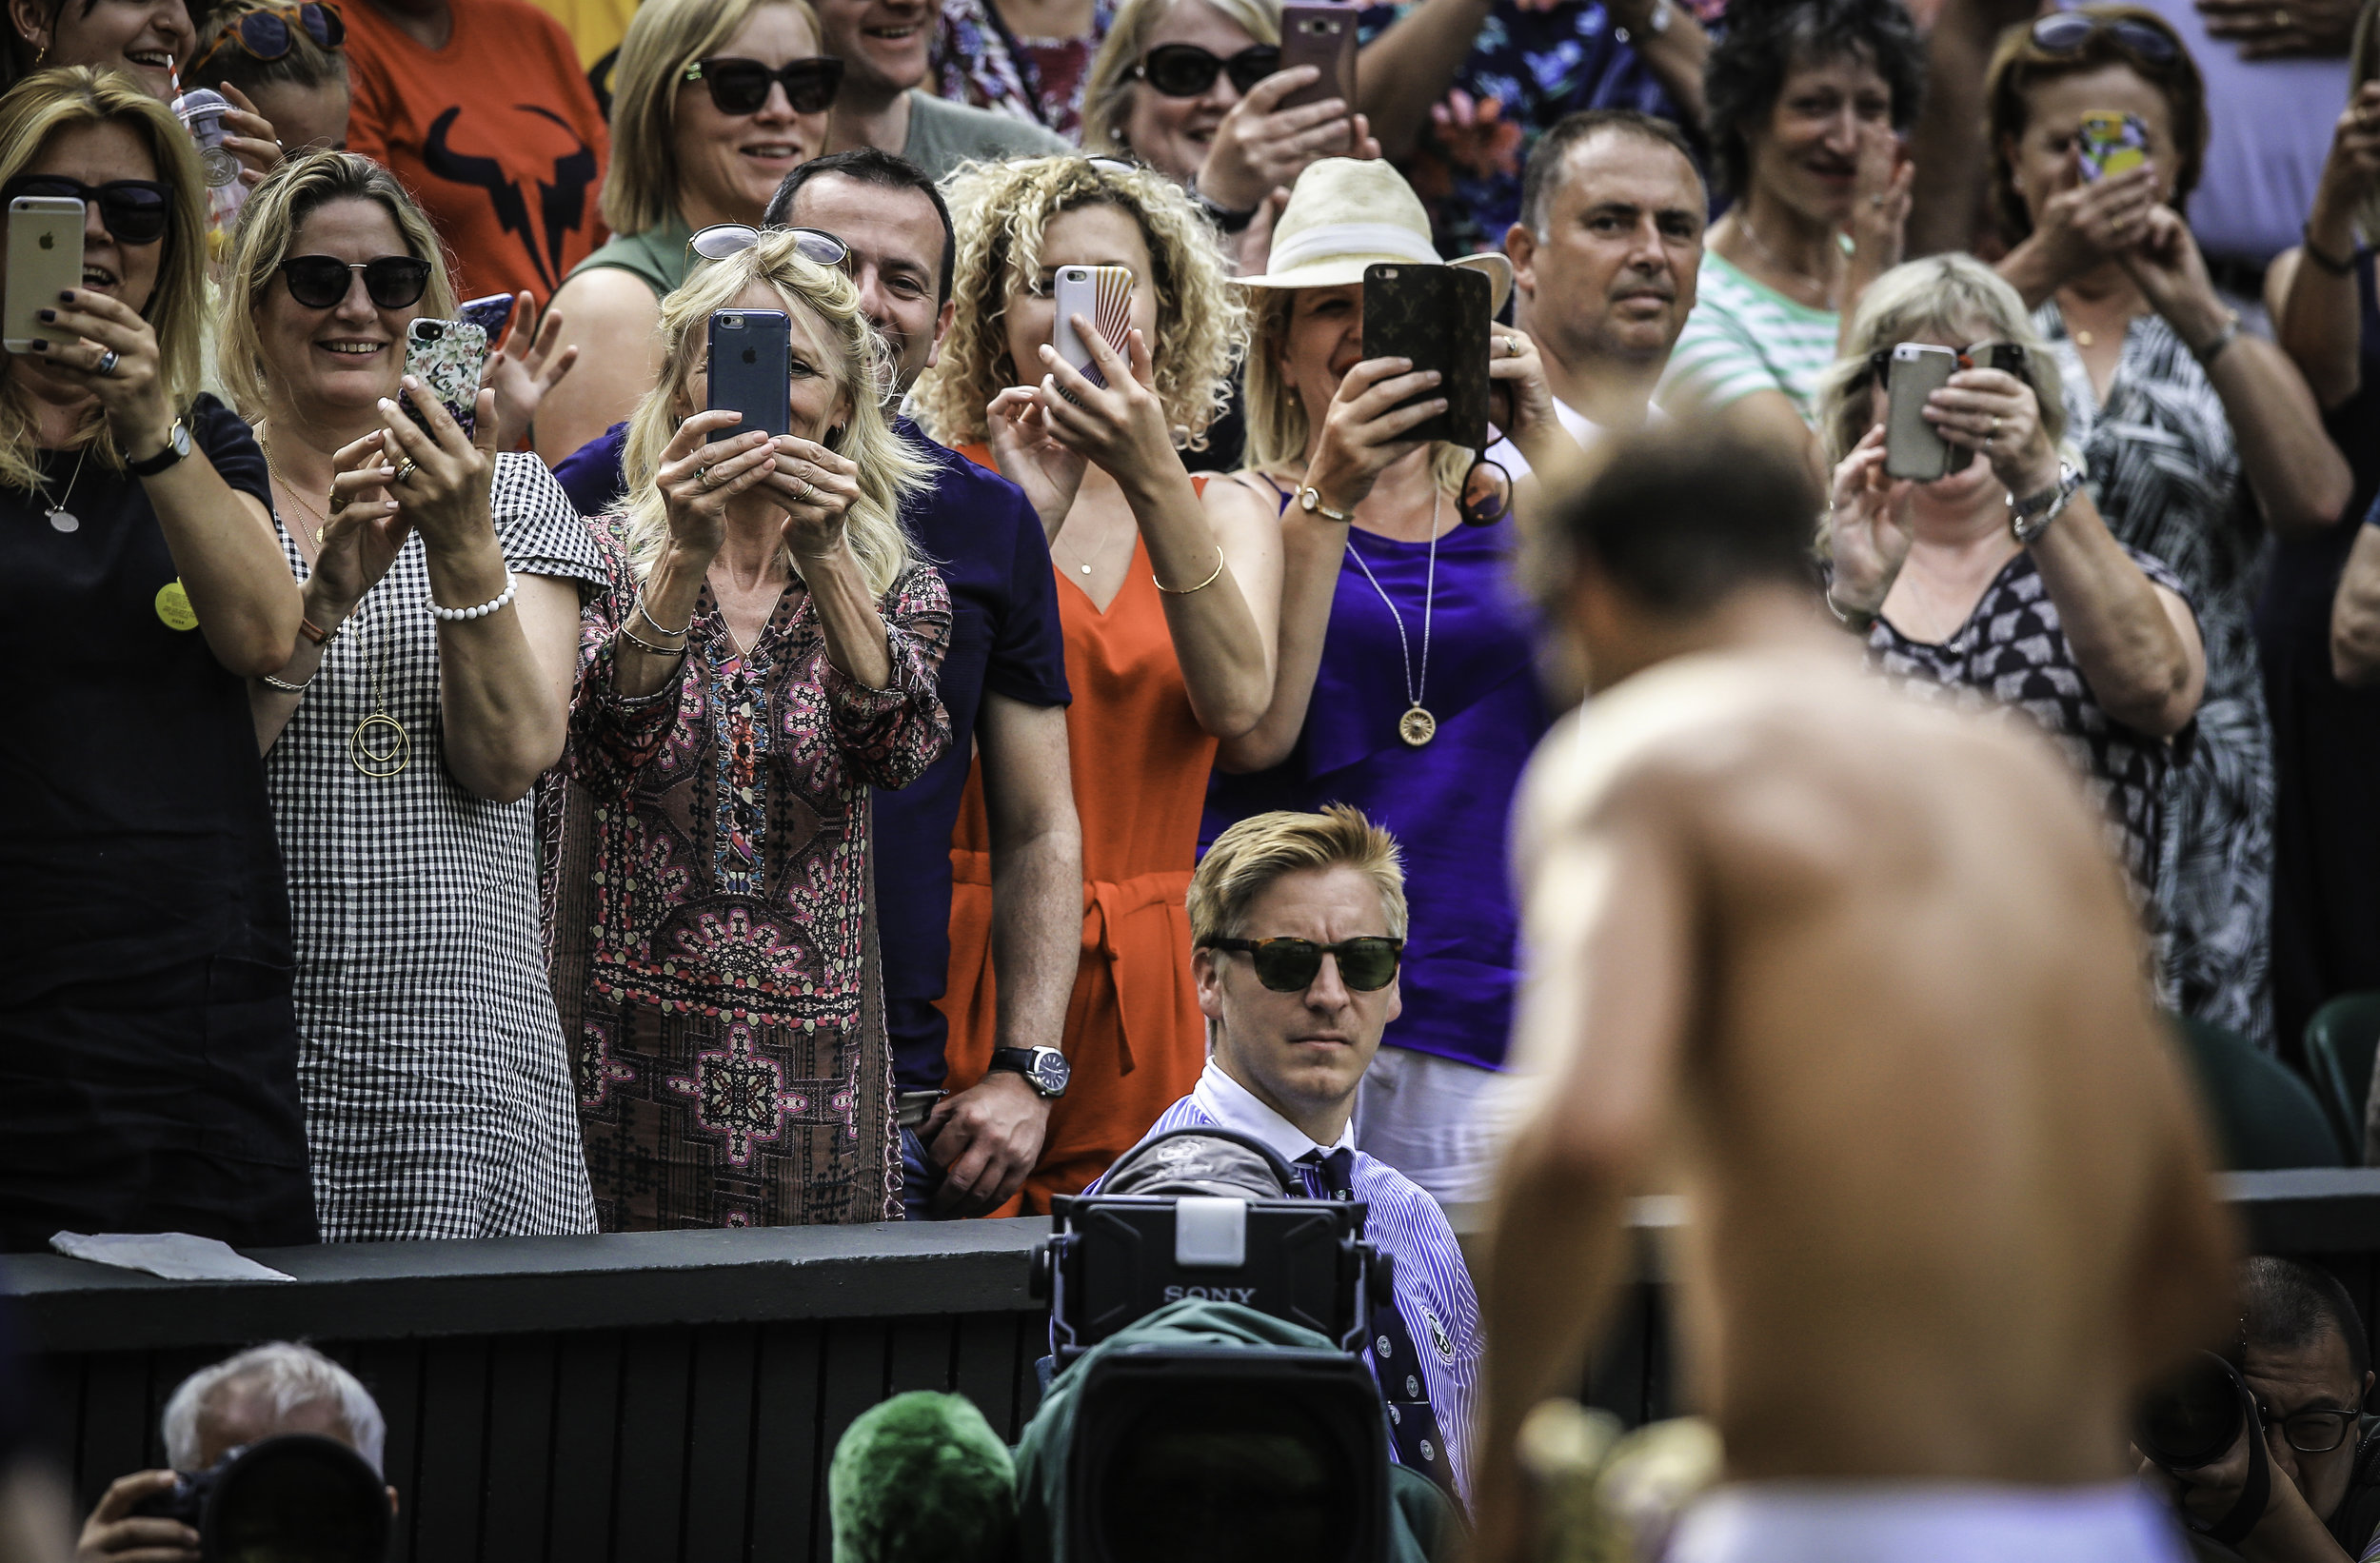 Female spectators take pictures of Rafael Nadal of Spain as he changes his shirt after a match on Wimbledon�s Centre Court during The Championships.Photo by Lindsey Parnaby  07 July 2017